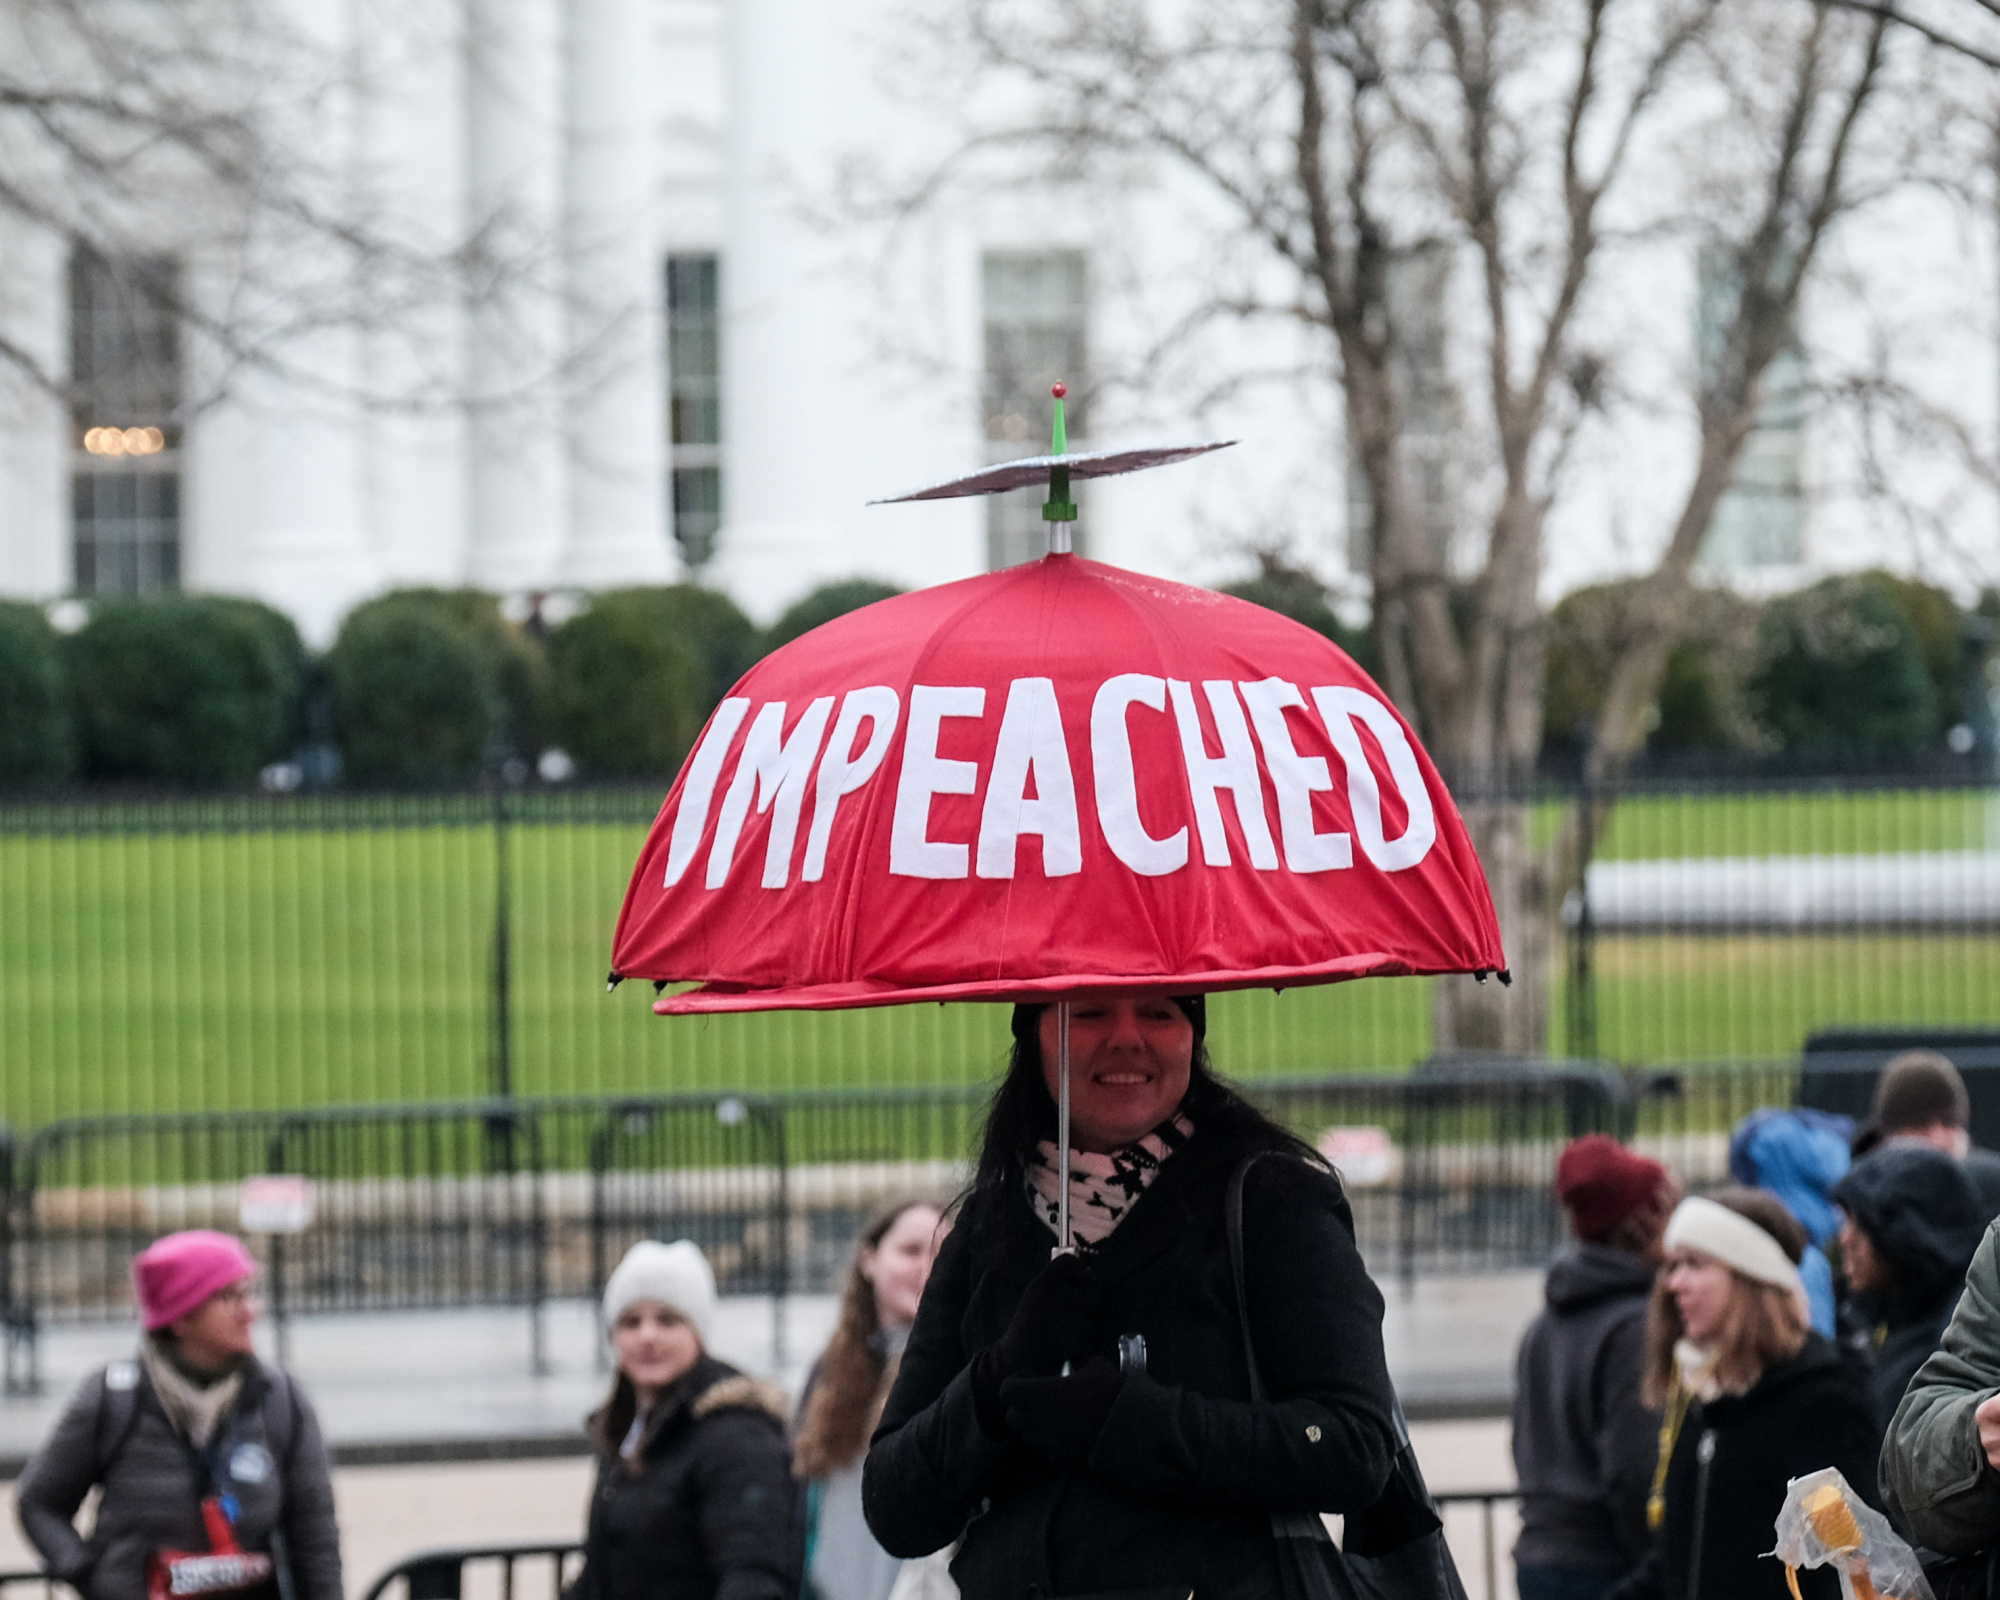 A demonstrator outside the White House following the Fourth Annual Women's March in Washington on Saturday   REUTERS